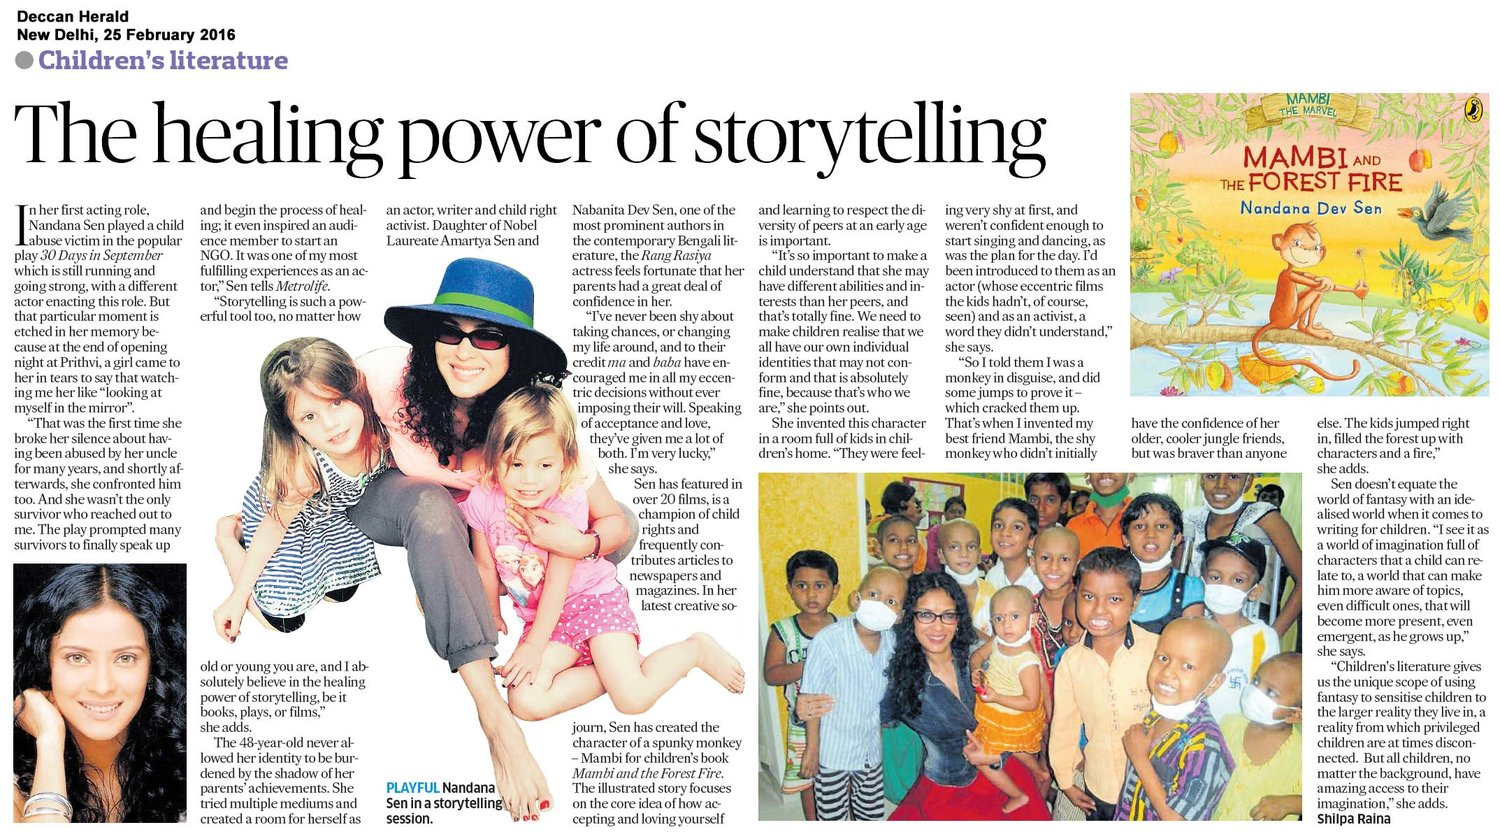 Deccan Herald - click here for the full article (external link)   February 25, 2016